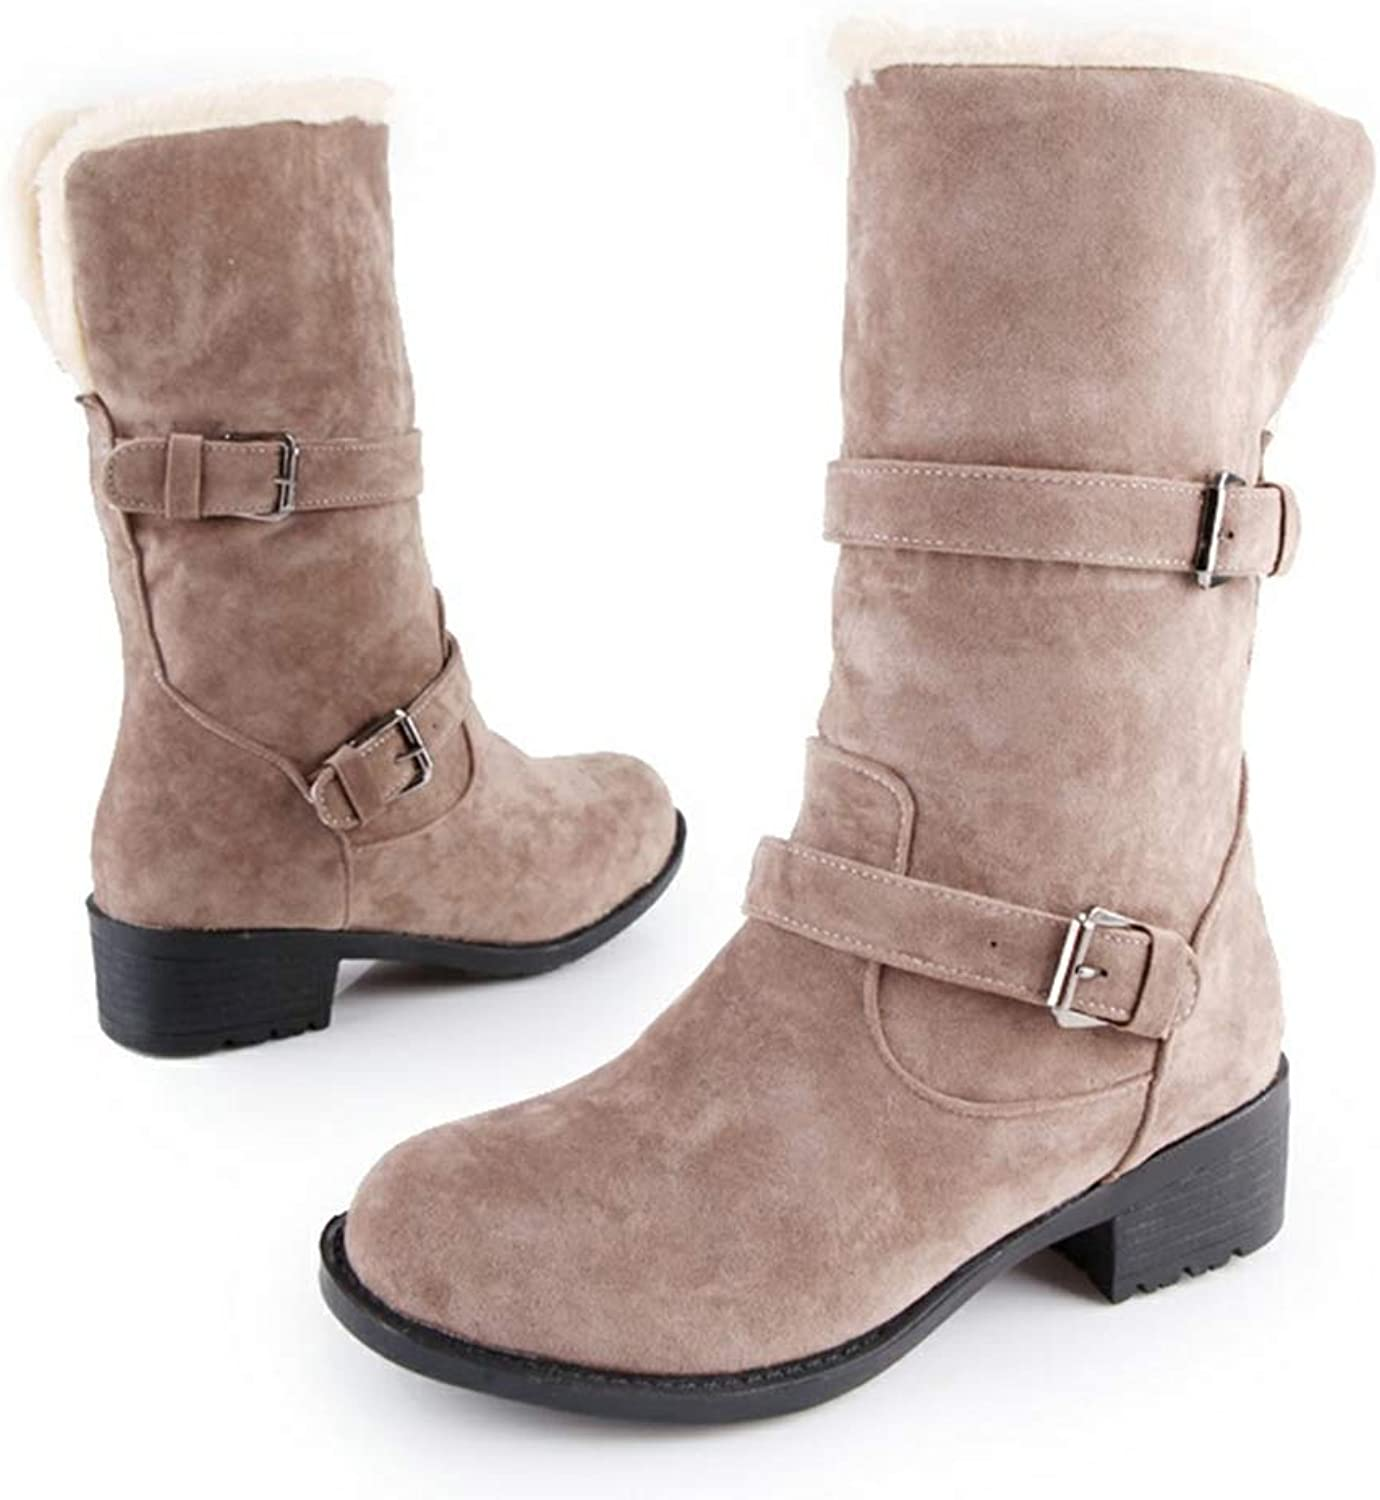 Hoxekle Mid Calf Boots Winter shoes Woman Slip On Boots Women shoes Chunky Heels Add Plush Black Snow Boots